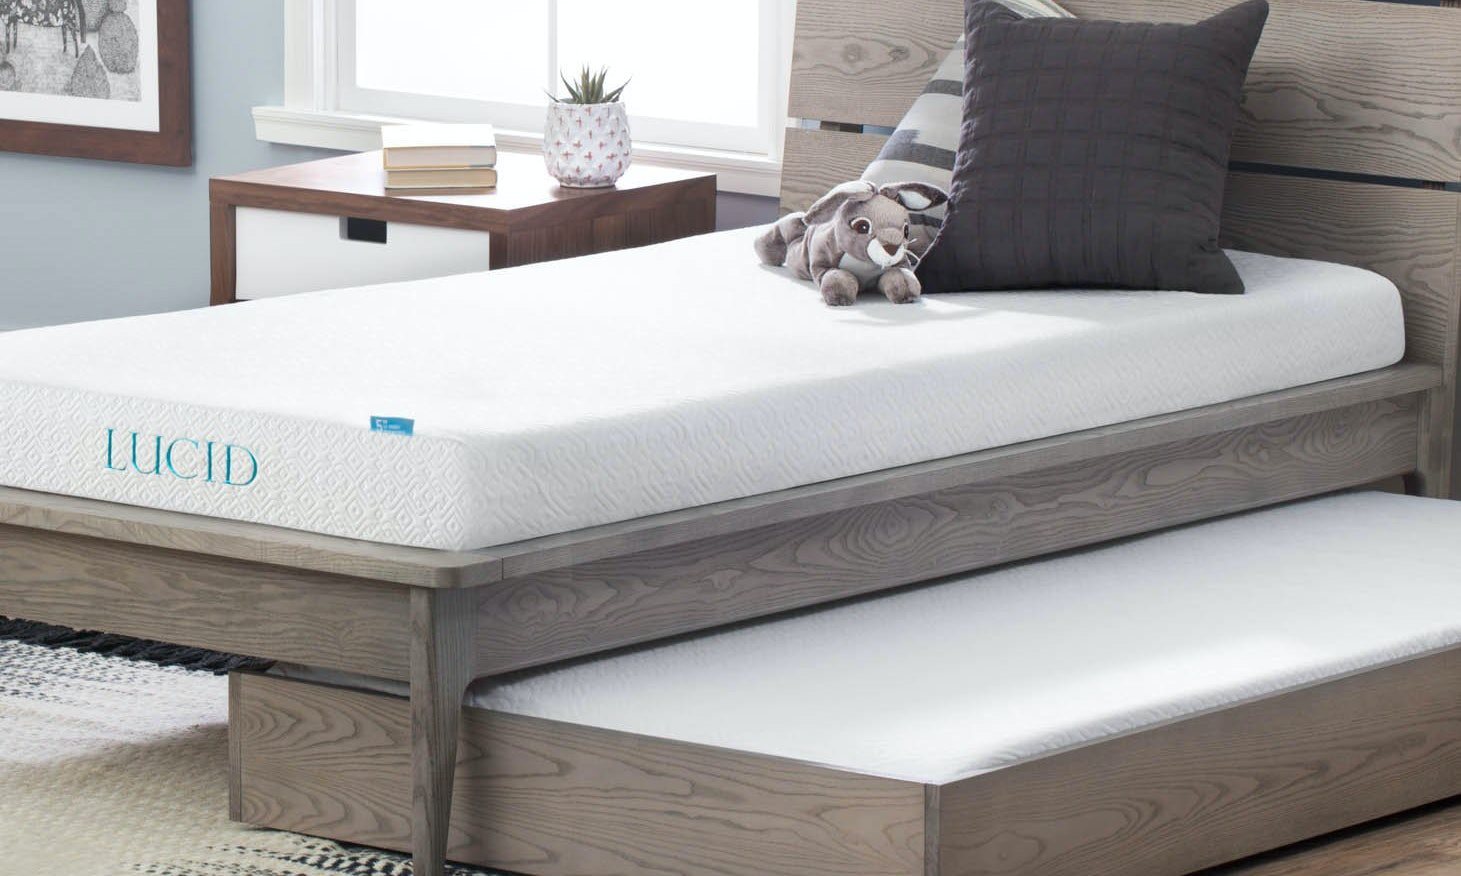 Best Foam Matress The 4 Best Cool Gel Memory Foam Mattresses